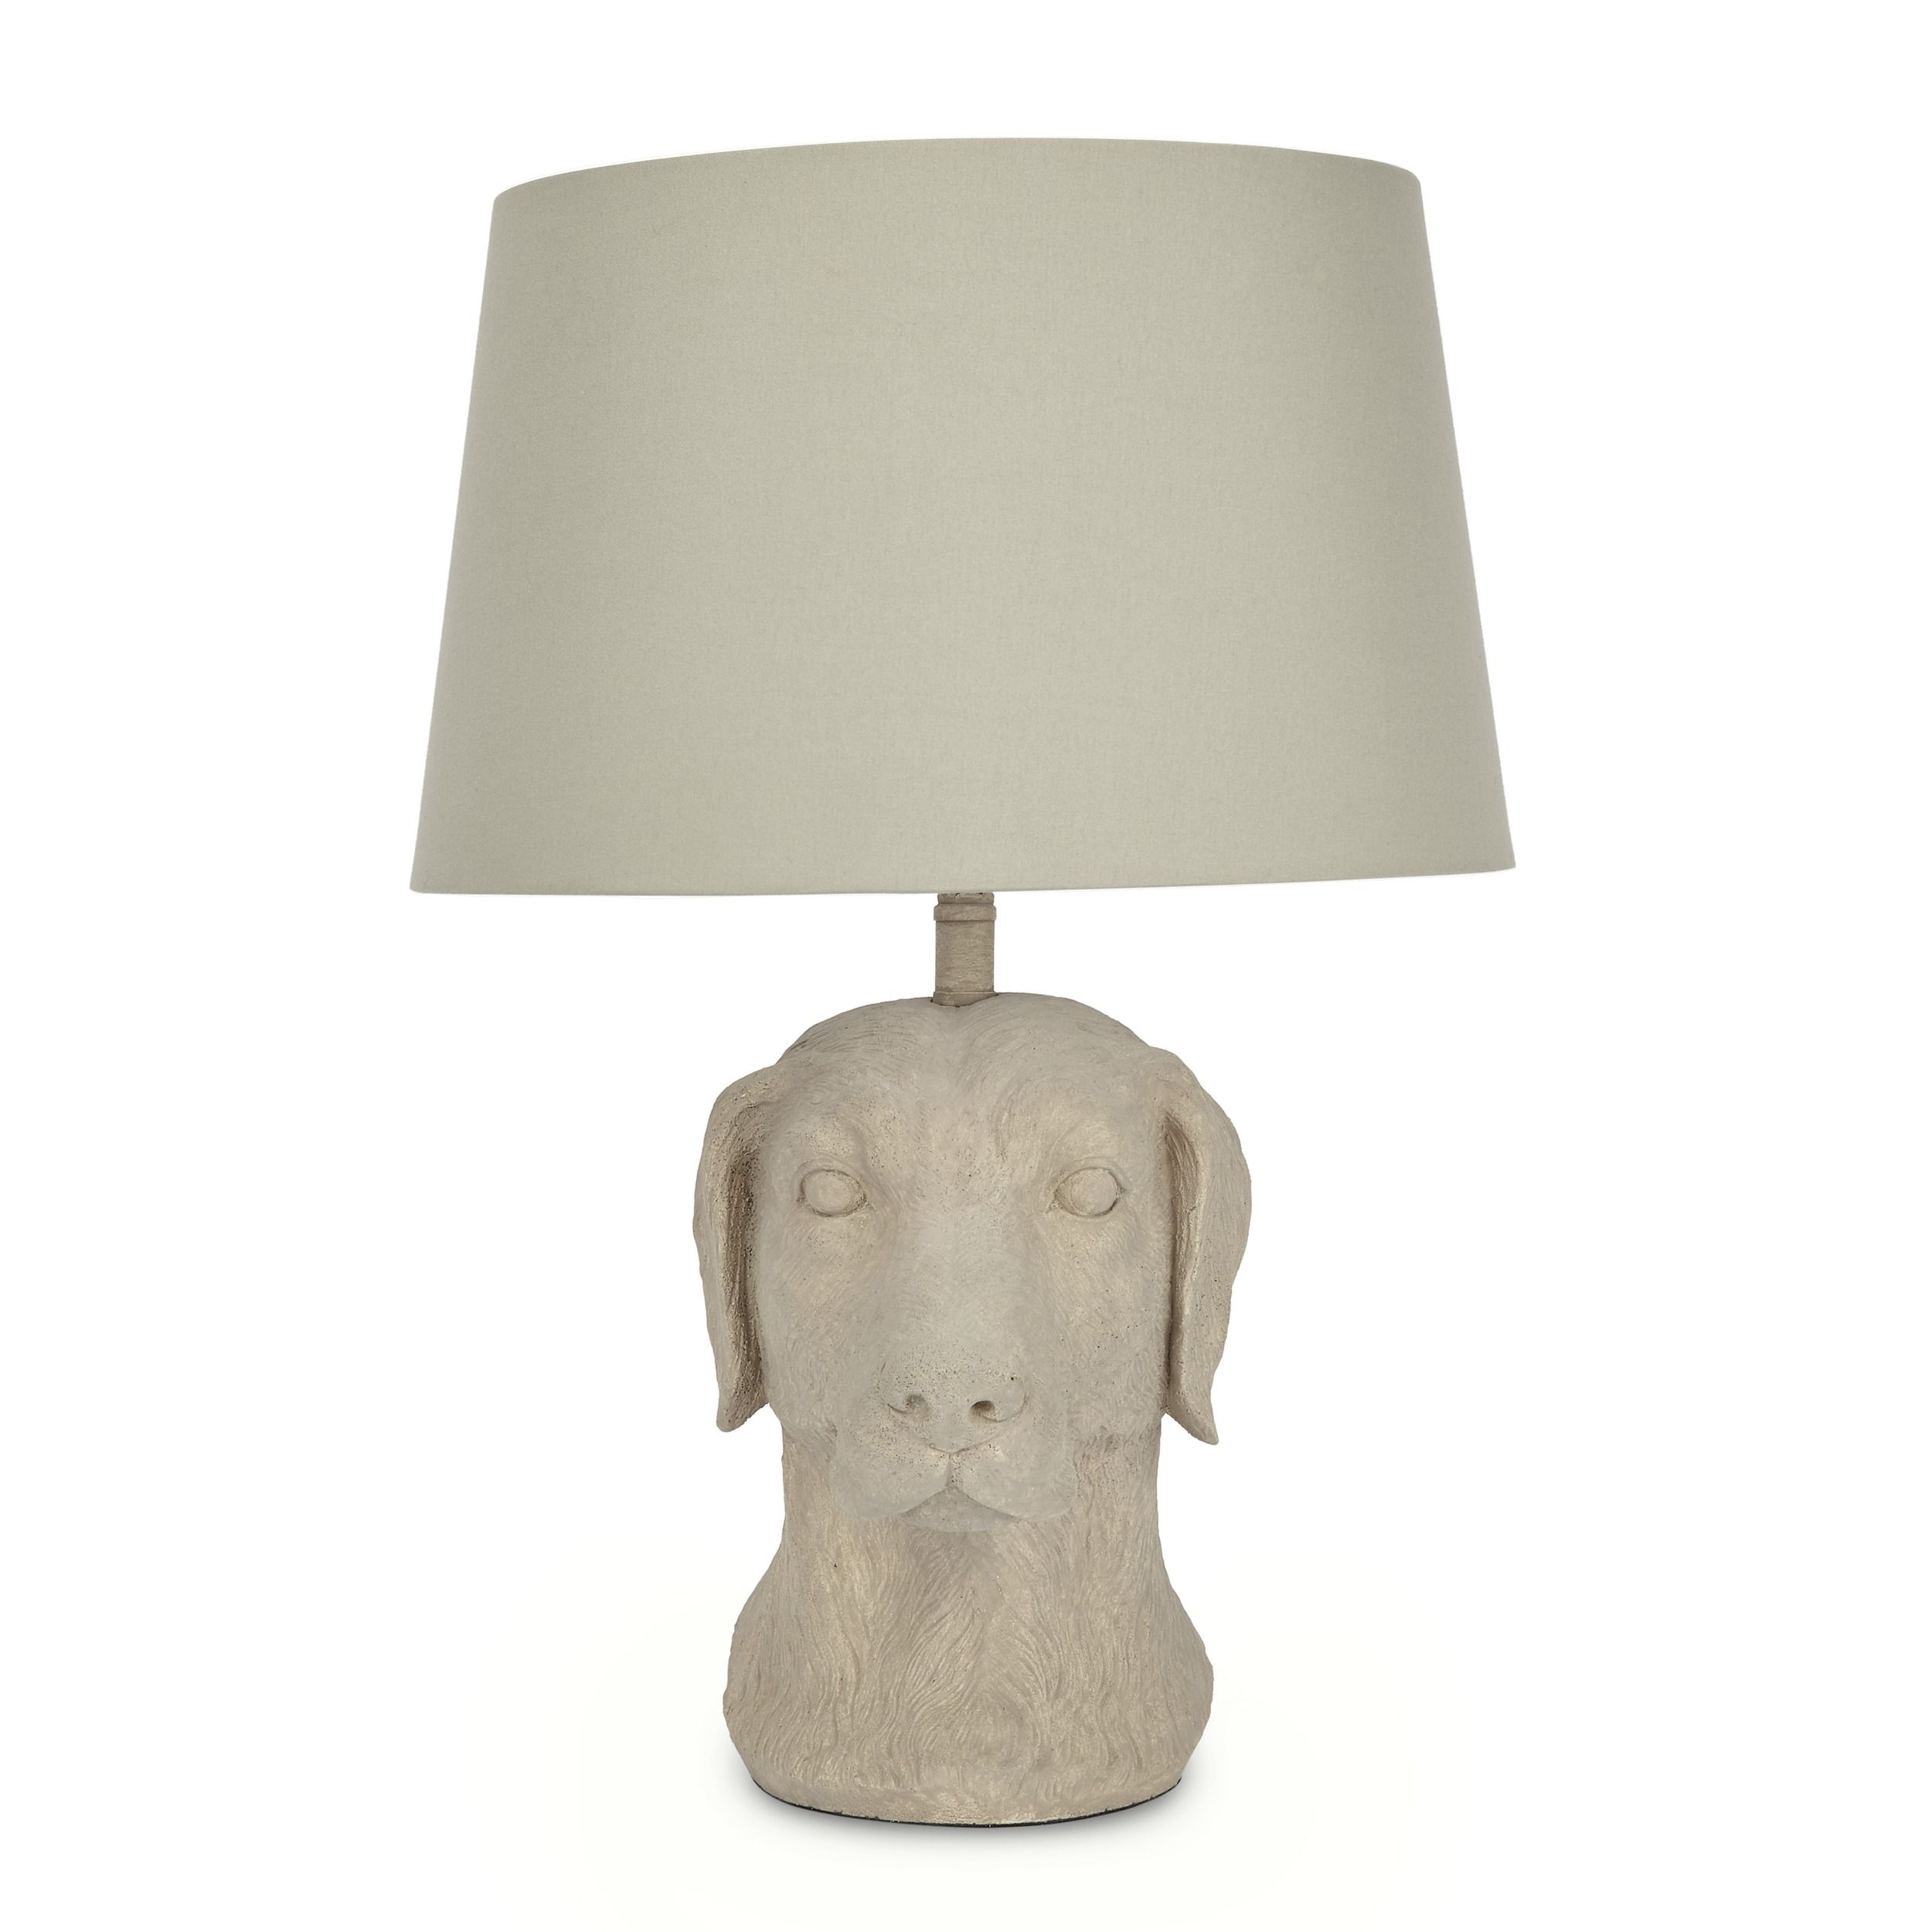 Tobias complete lamp at laura ashley lighting bright buys tobias complete lamp at laura ashley geotapseo Images